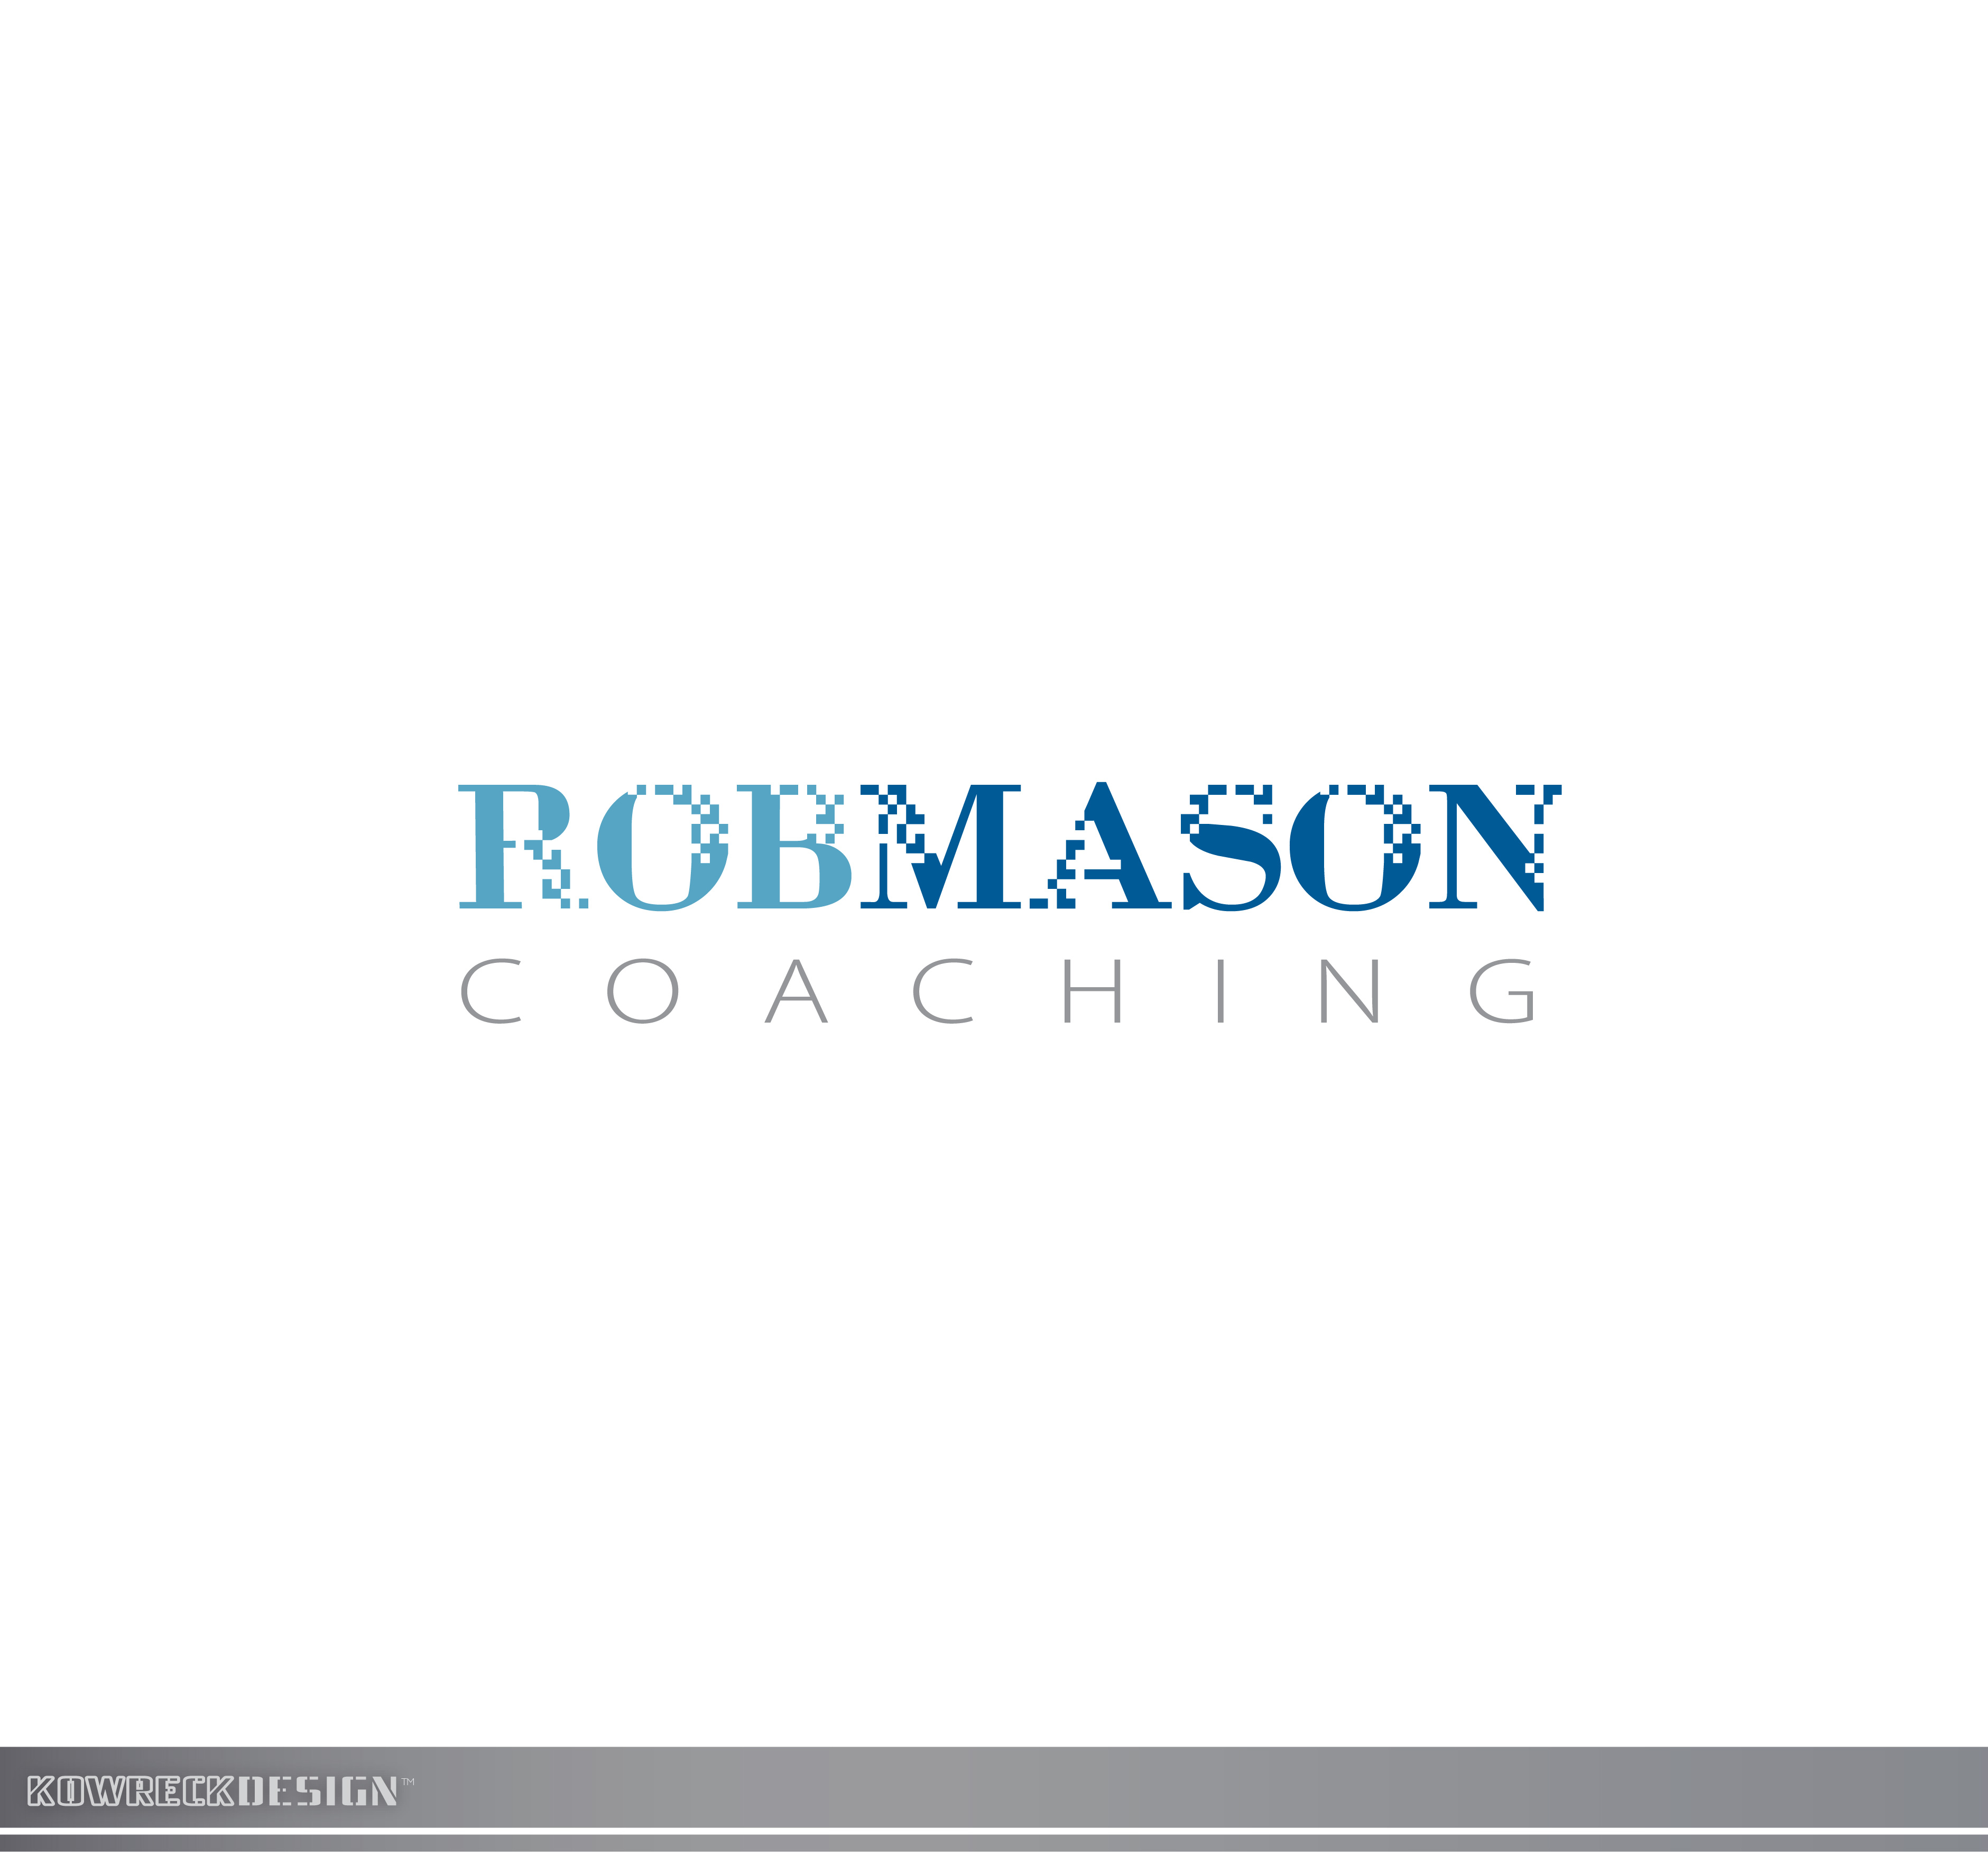 Logo Design by kowreck - Entry No. 91 in the Logo Design Contest New Logo Design Needed for Exciting Company Rob Mason Coaching.